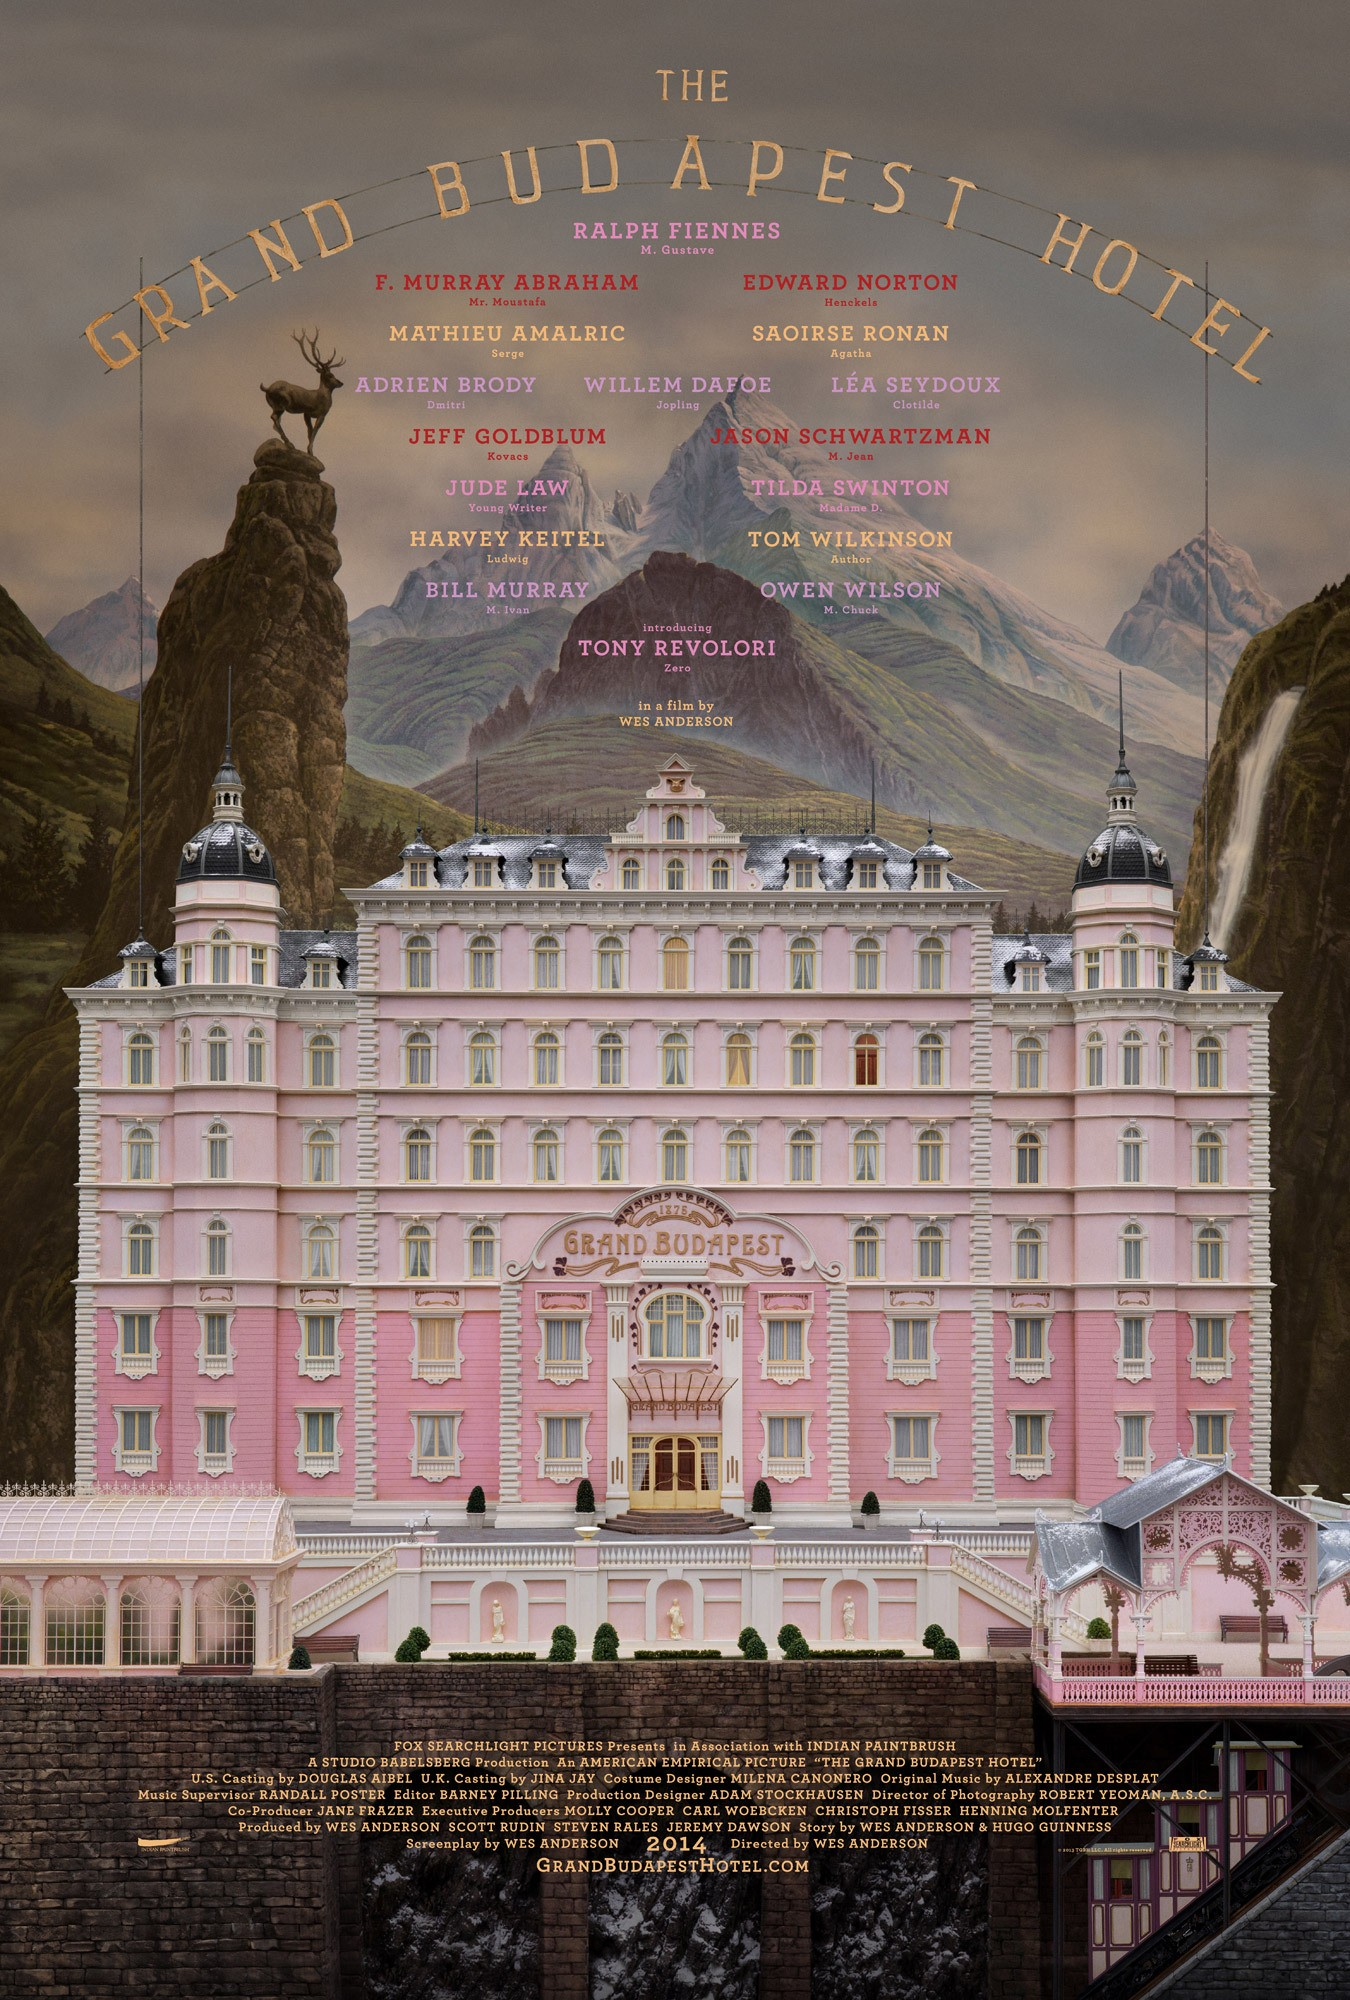 Mega Sized Movie Poster Image for The Grand Budapest Hotel